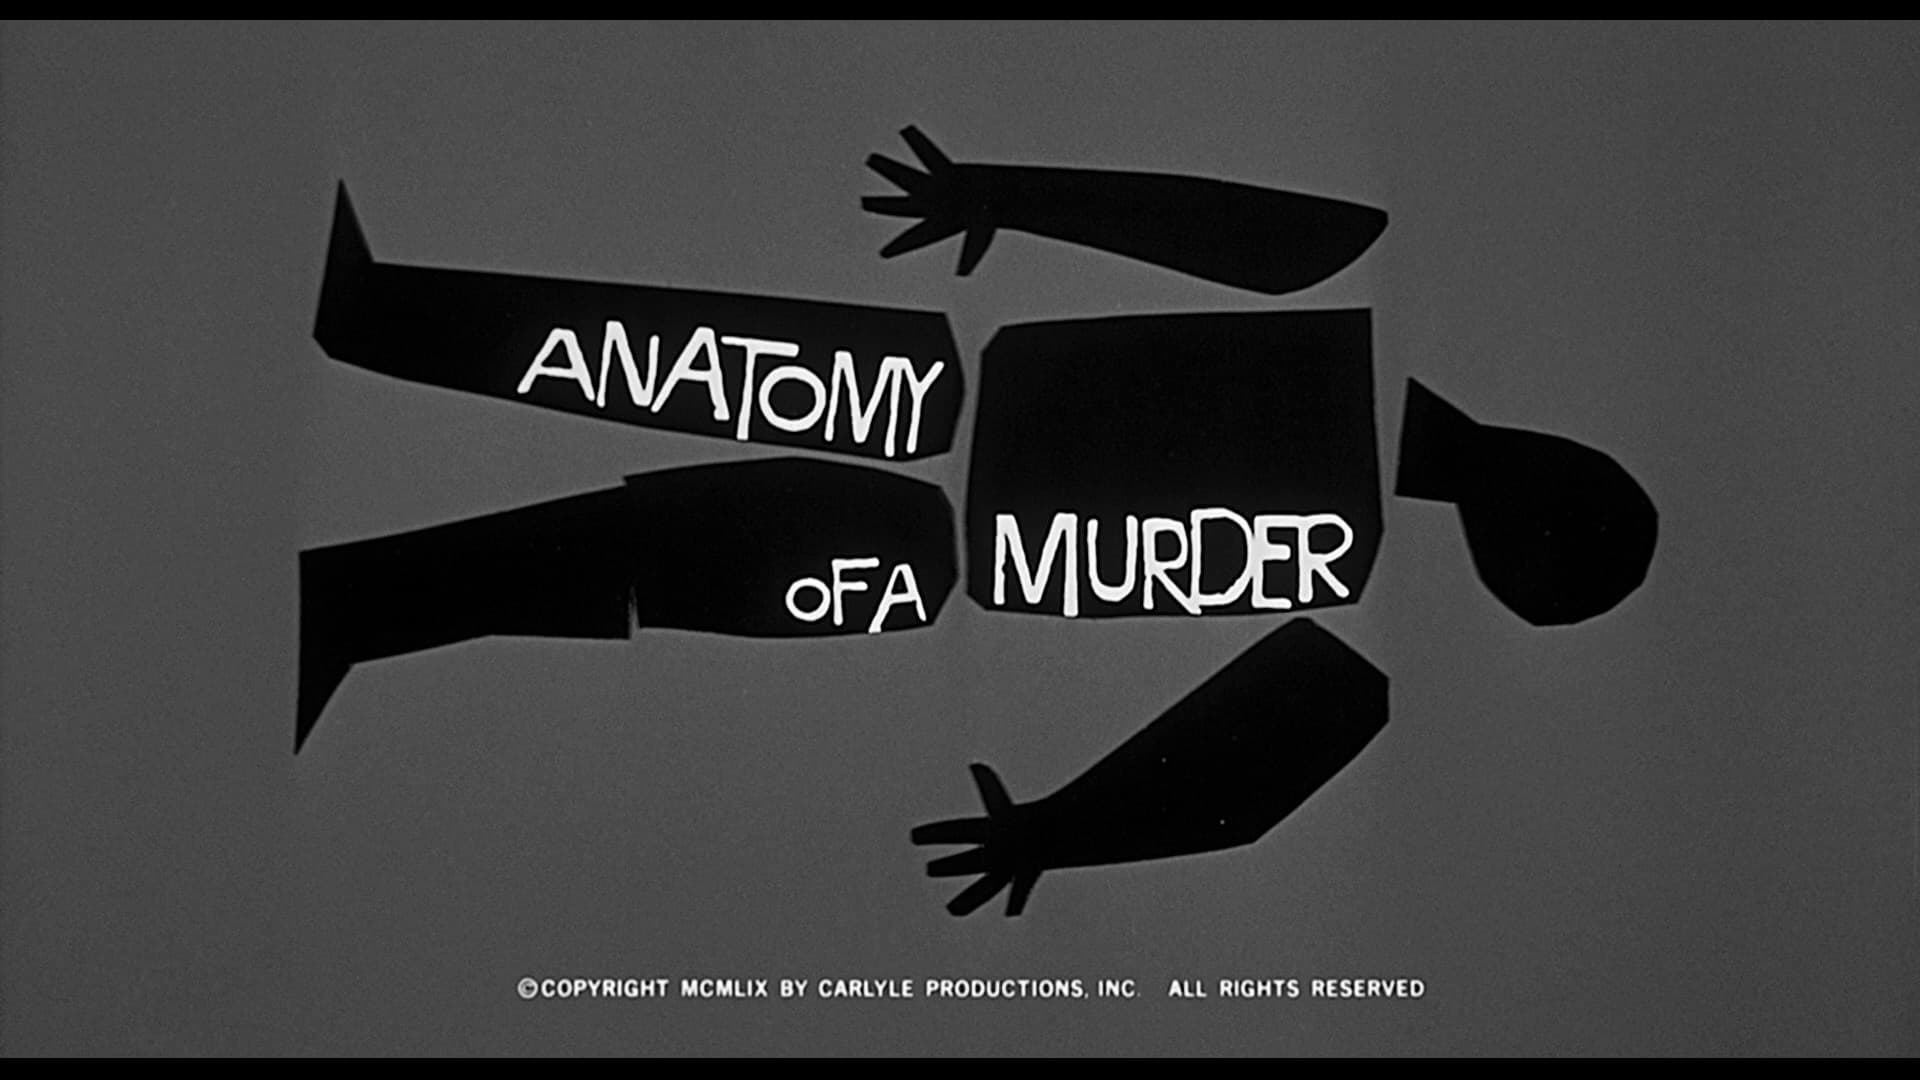 Anatomy of a murder trailer